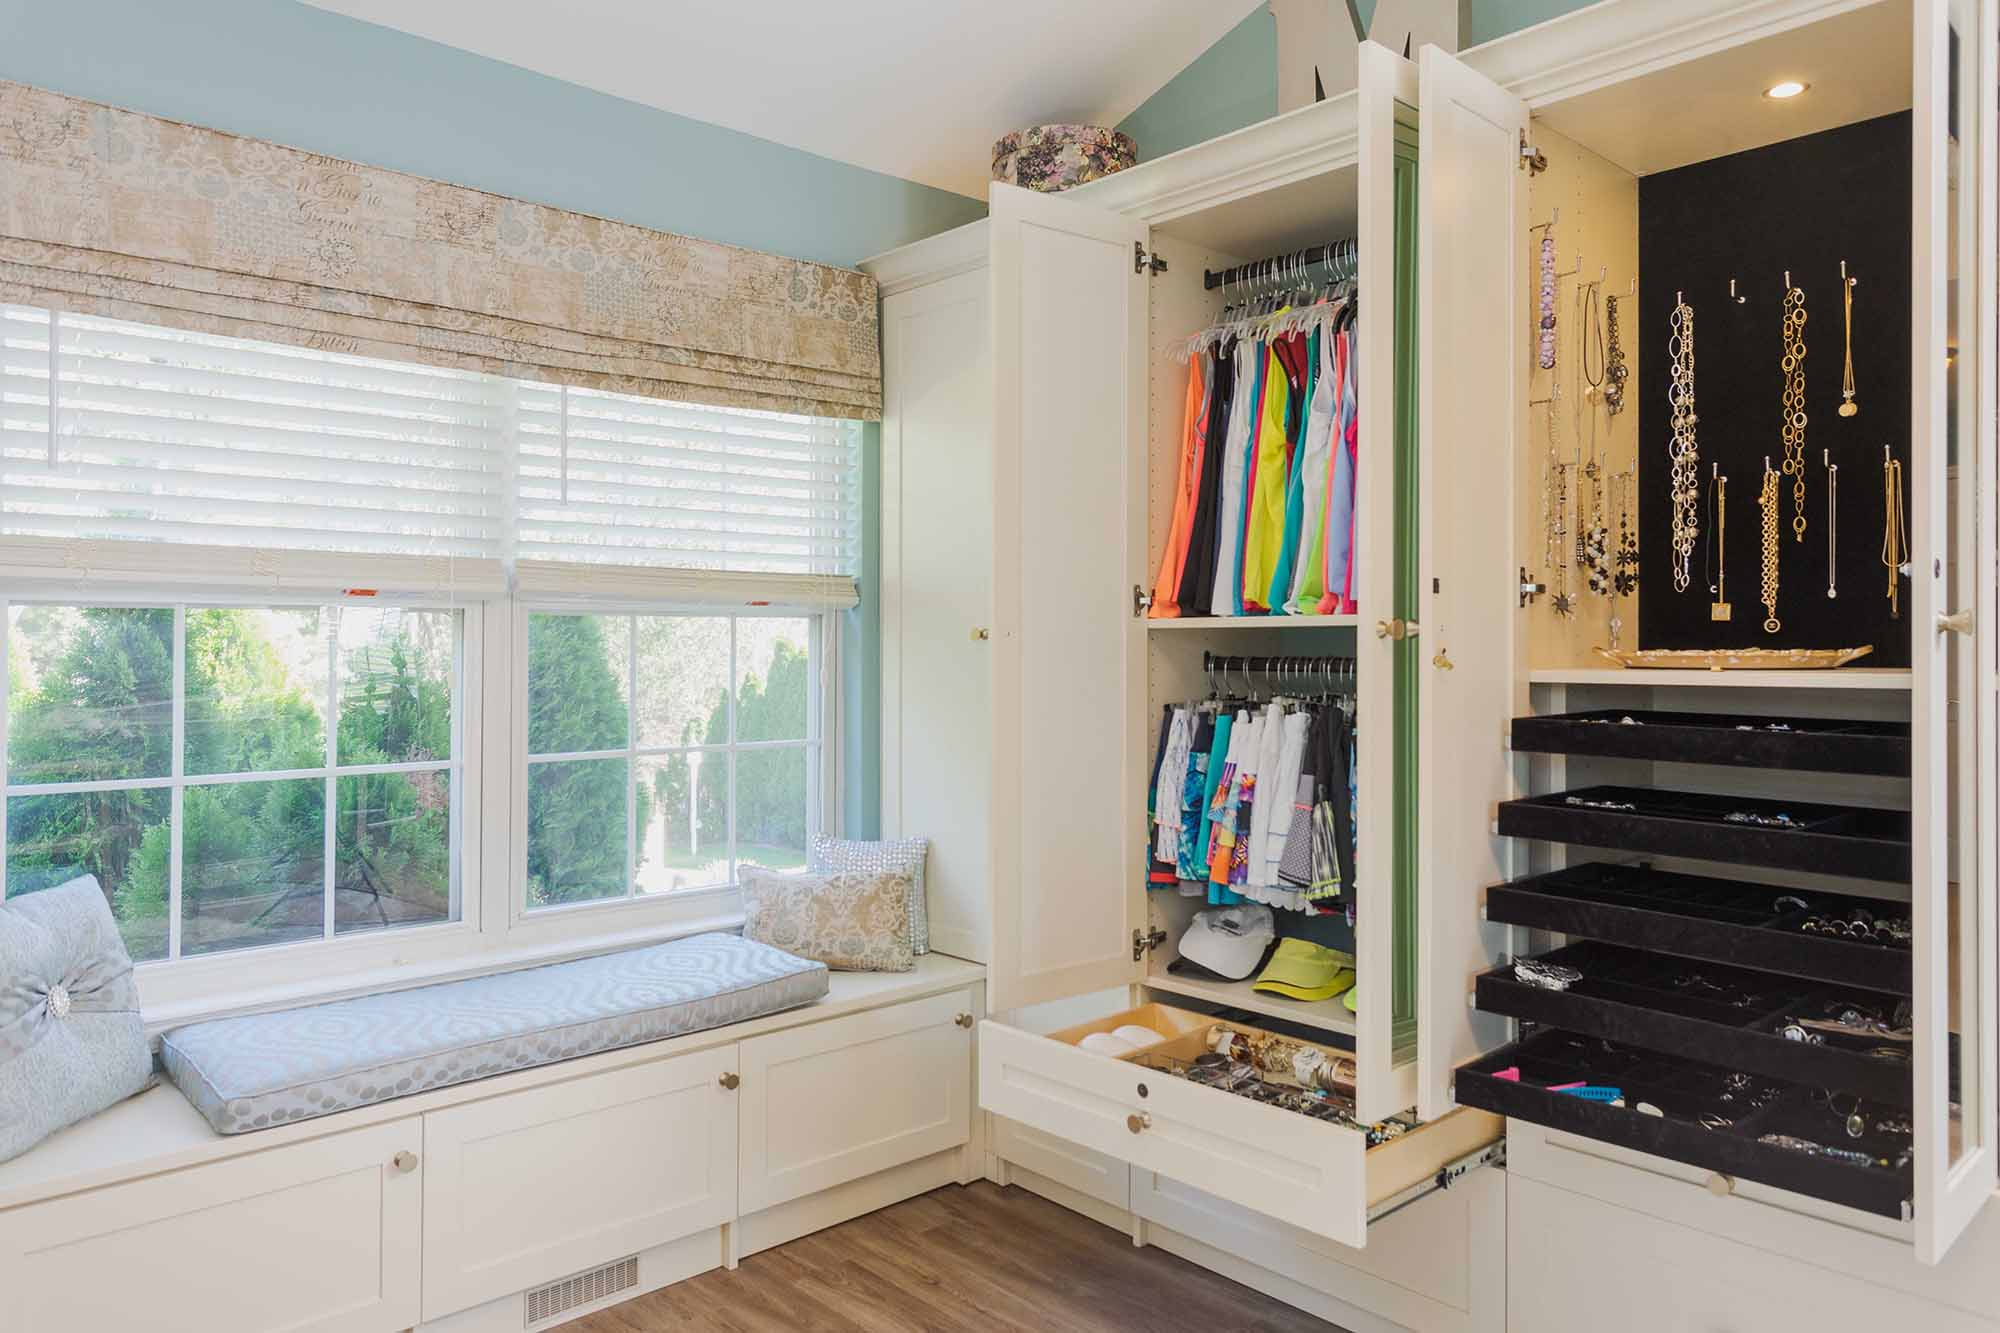 Sitting room closet with clothing and jewelry organized